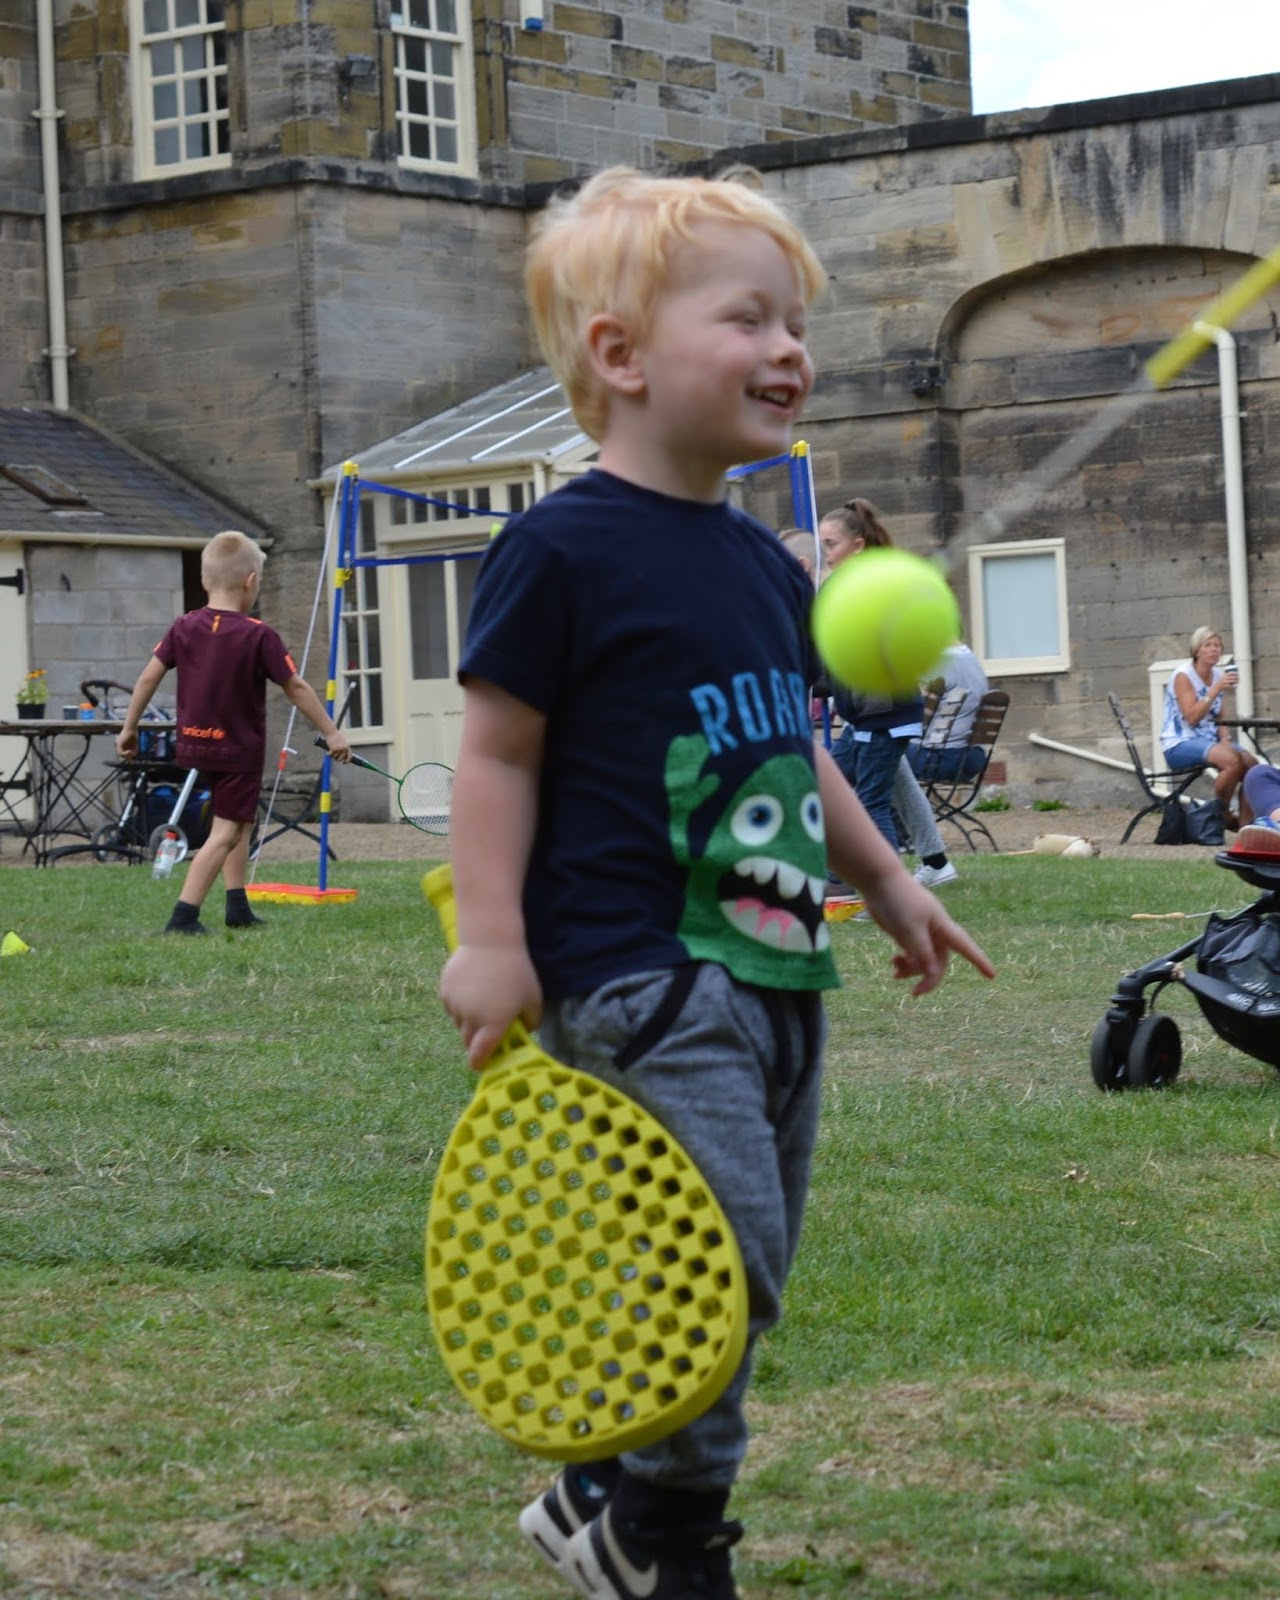 10 Reasons to Visit Seaton Delaval Hall  - swingball